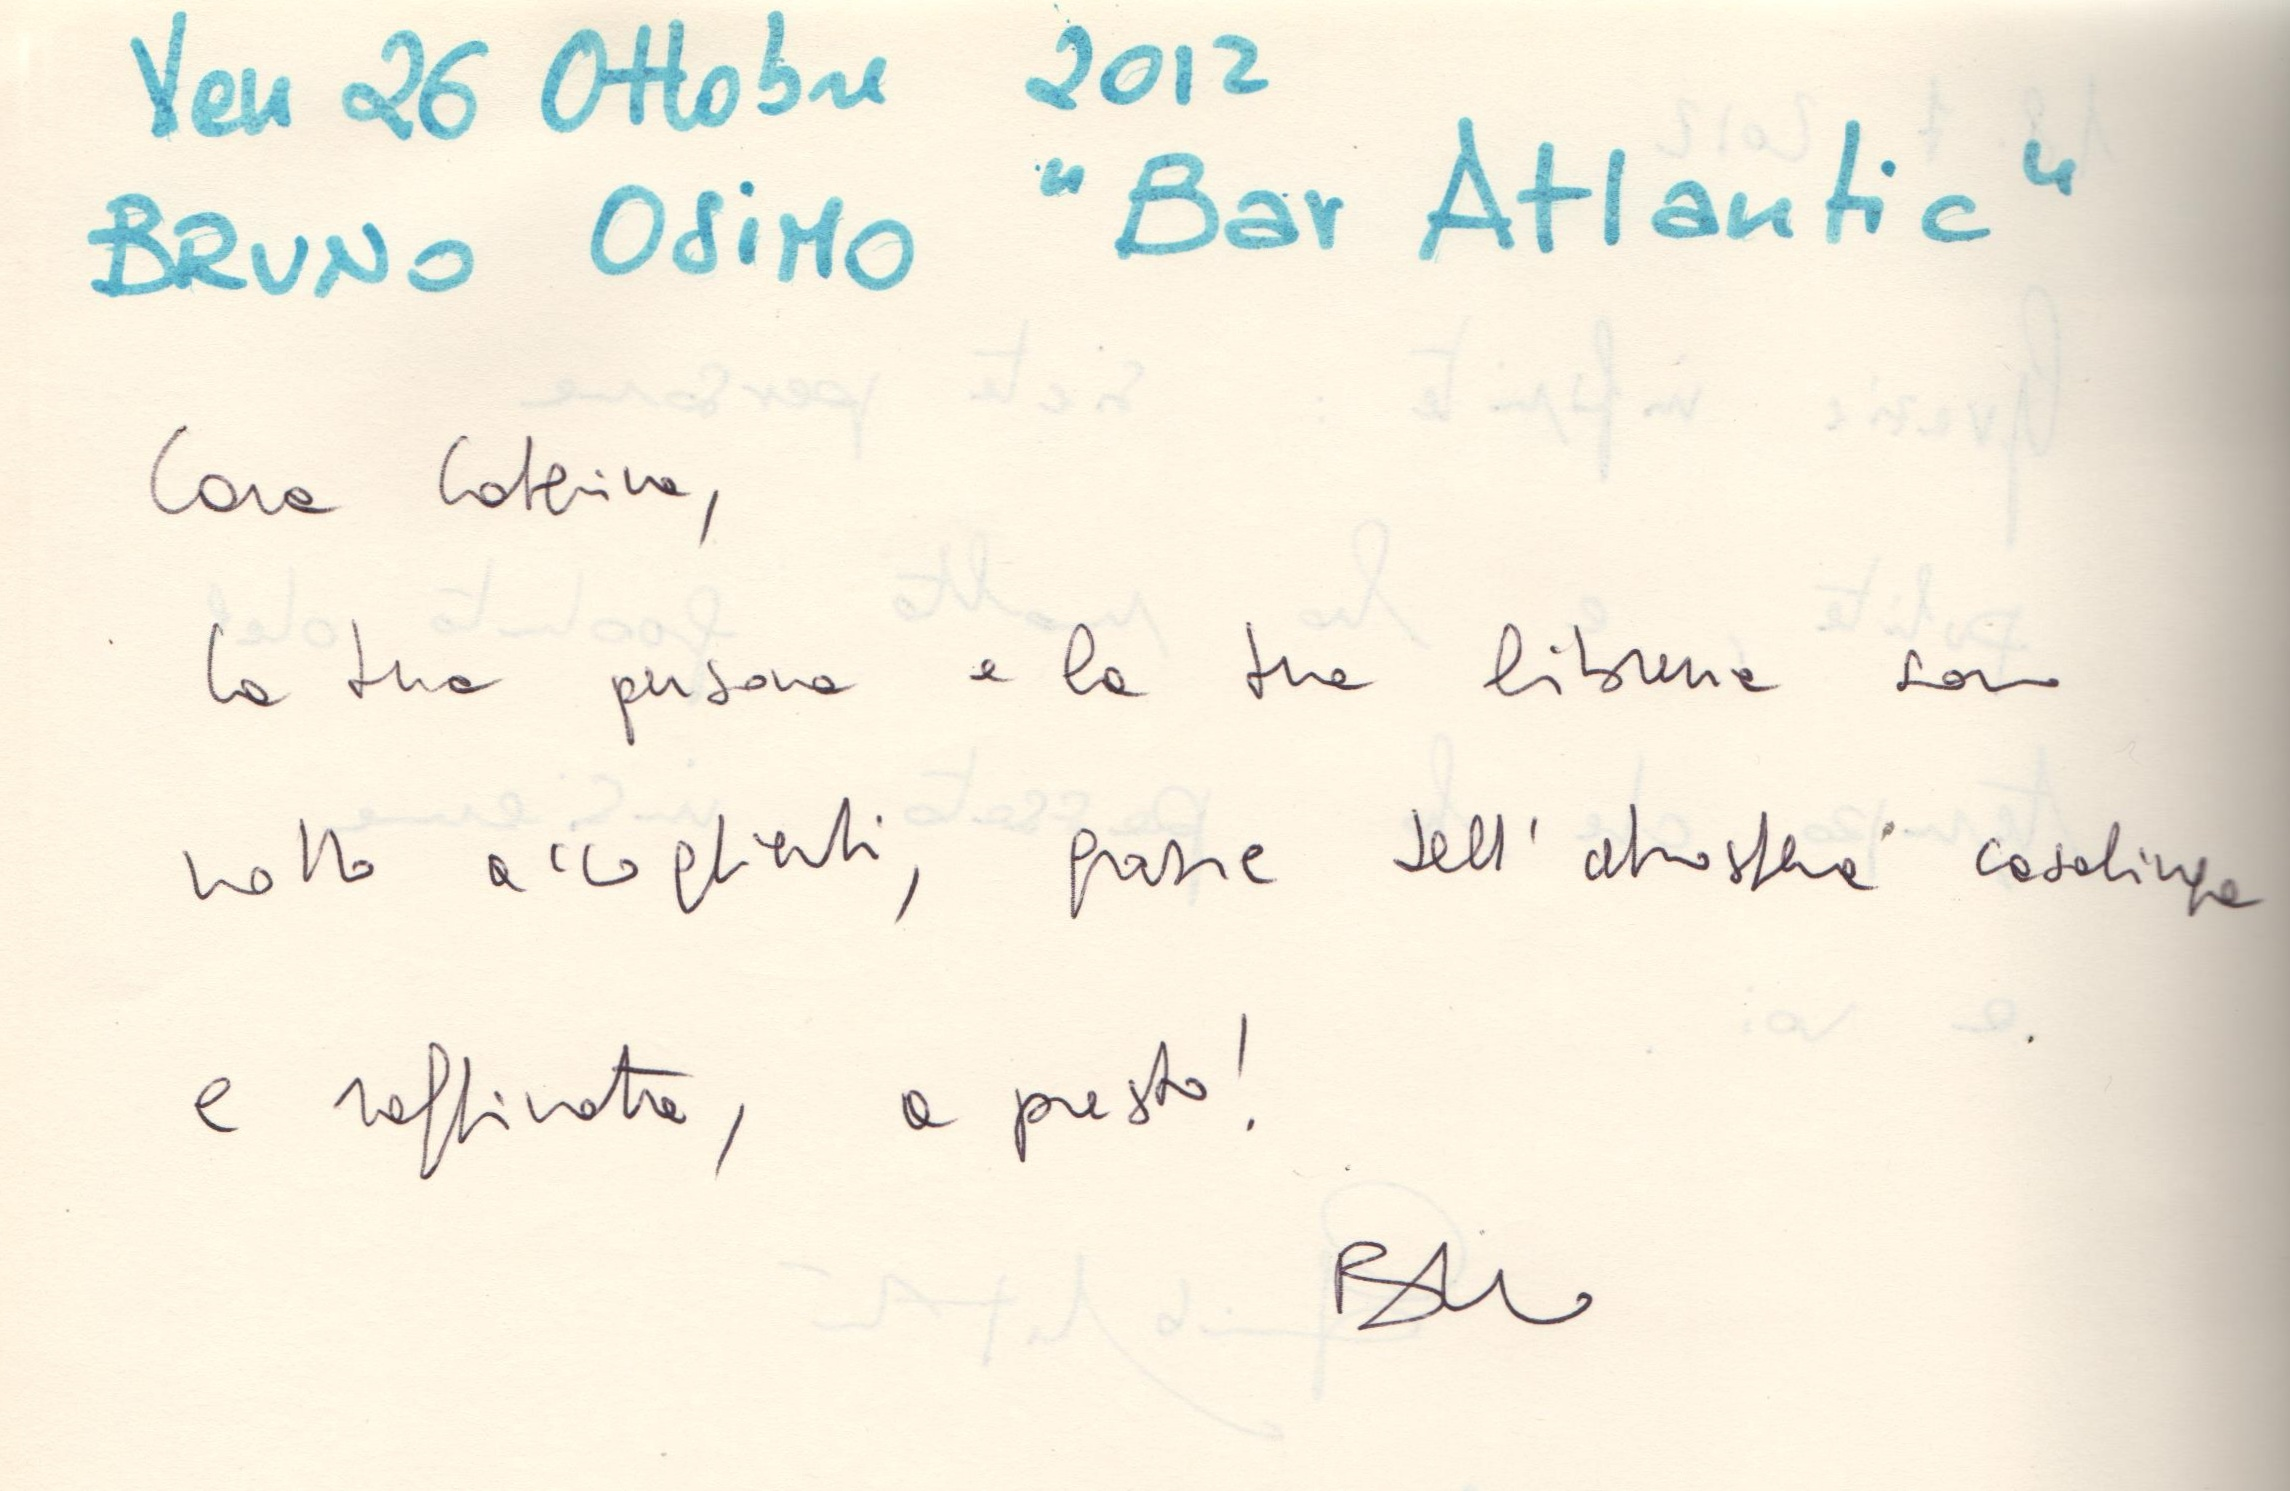 """Bar Atlantic"" di Bruno Osimo"